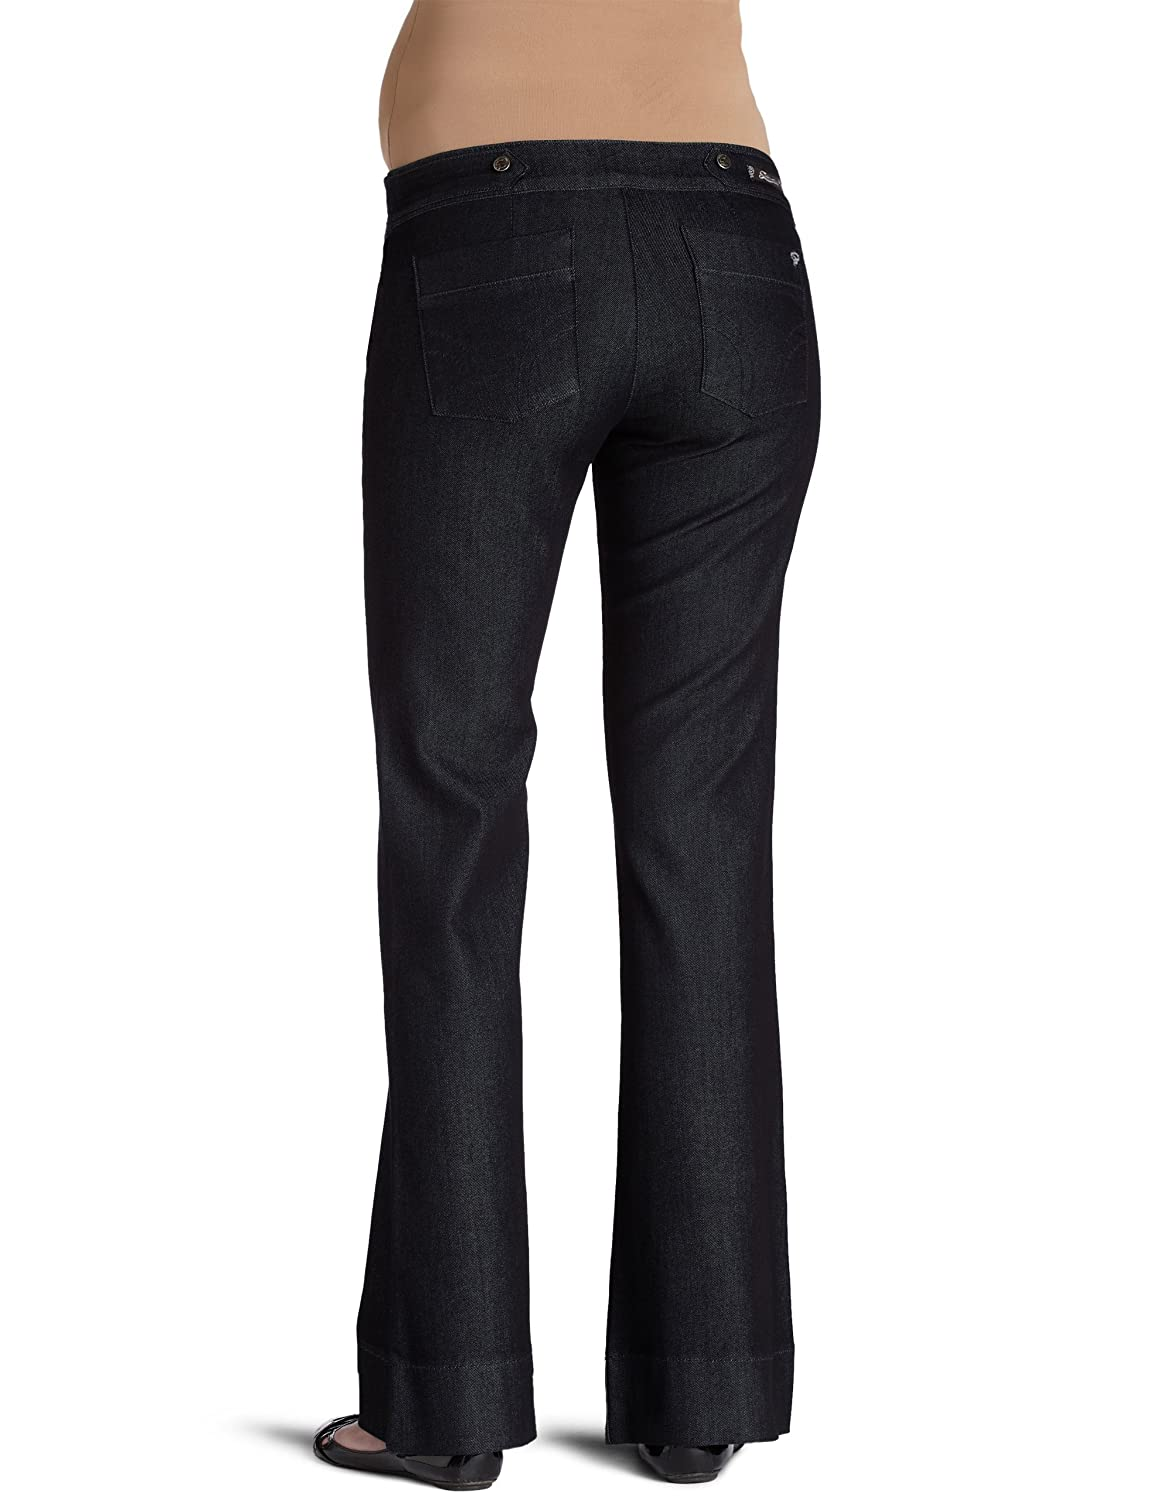 Find a great selection of flare and wide leg jeans for women at skachat-clas.cf Shop by rise, wash, waist size, color and more. Free shipping & returns.